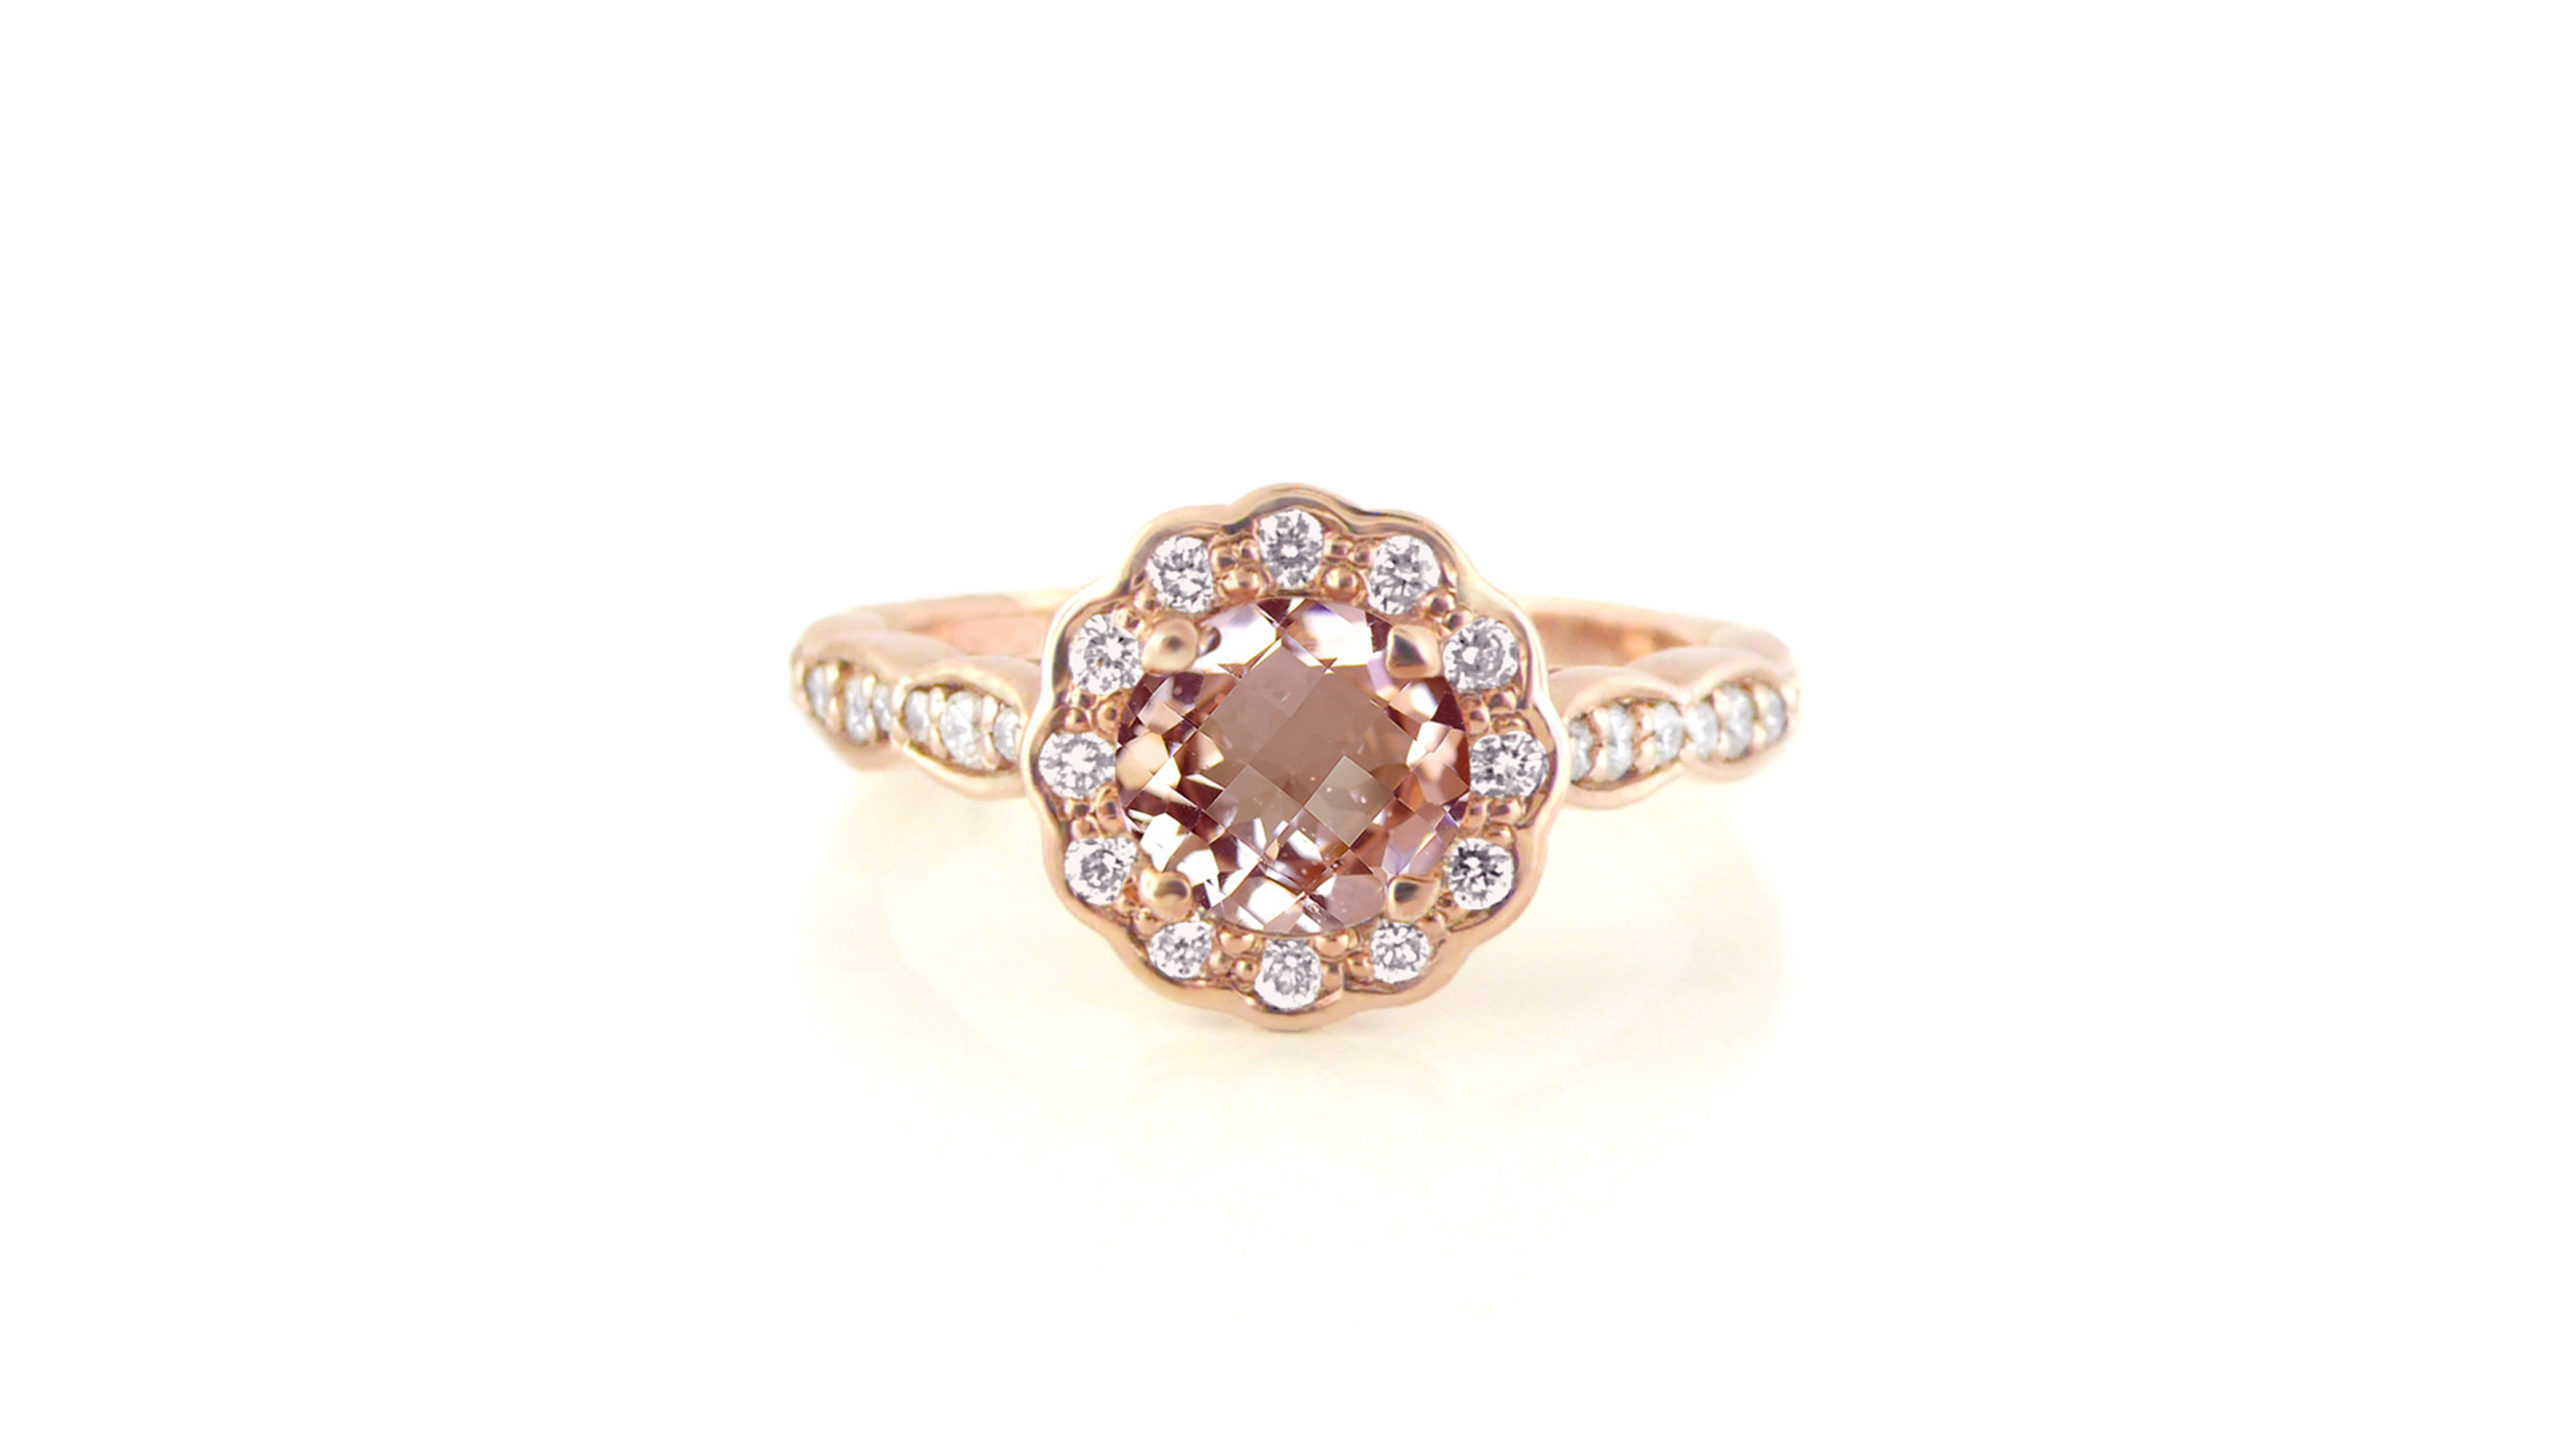 Morganite coloured gemstone with scalloped diamond halo | Set in rose gold